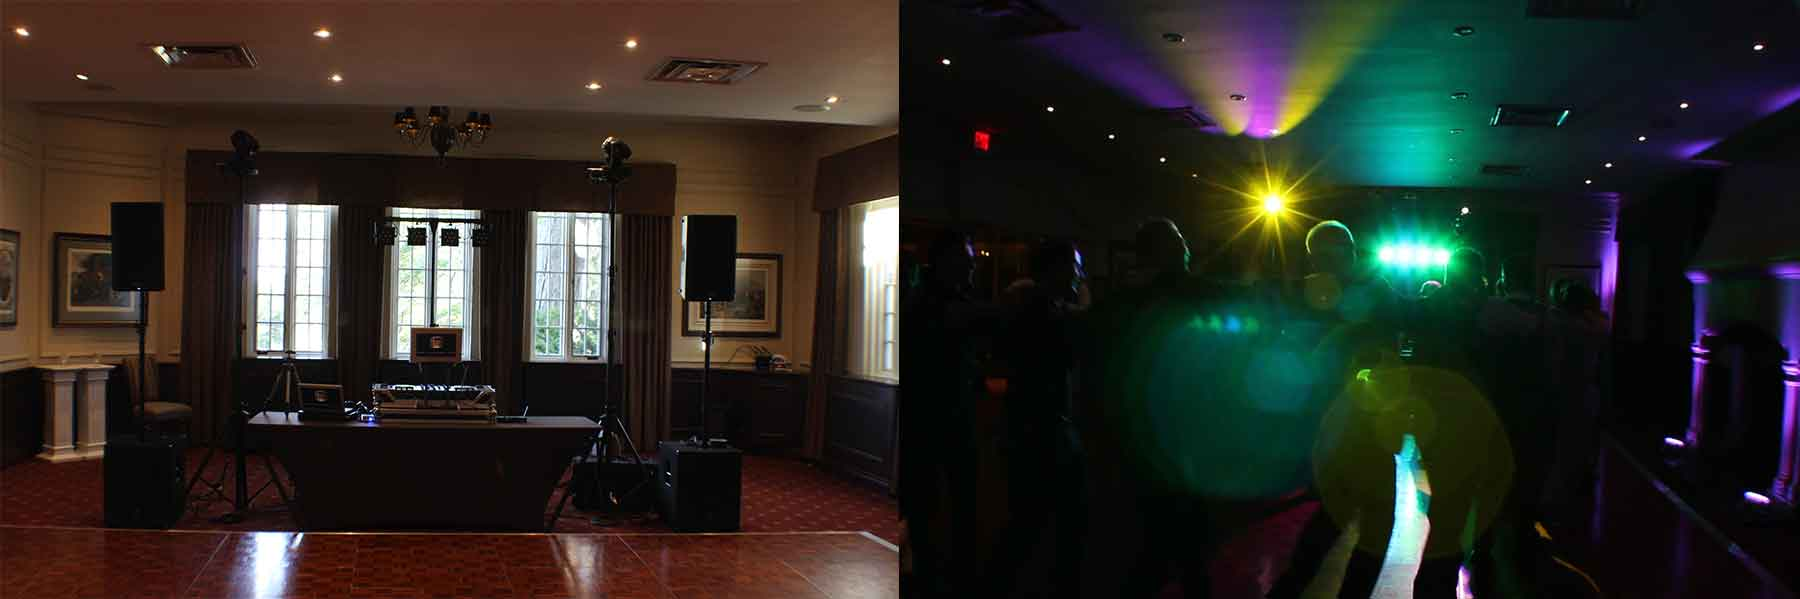 St Georges Toronto Wedding, Toronto Wedding DJ, Wedding at St Georges